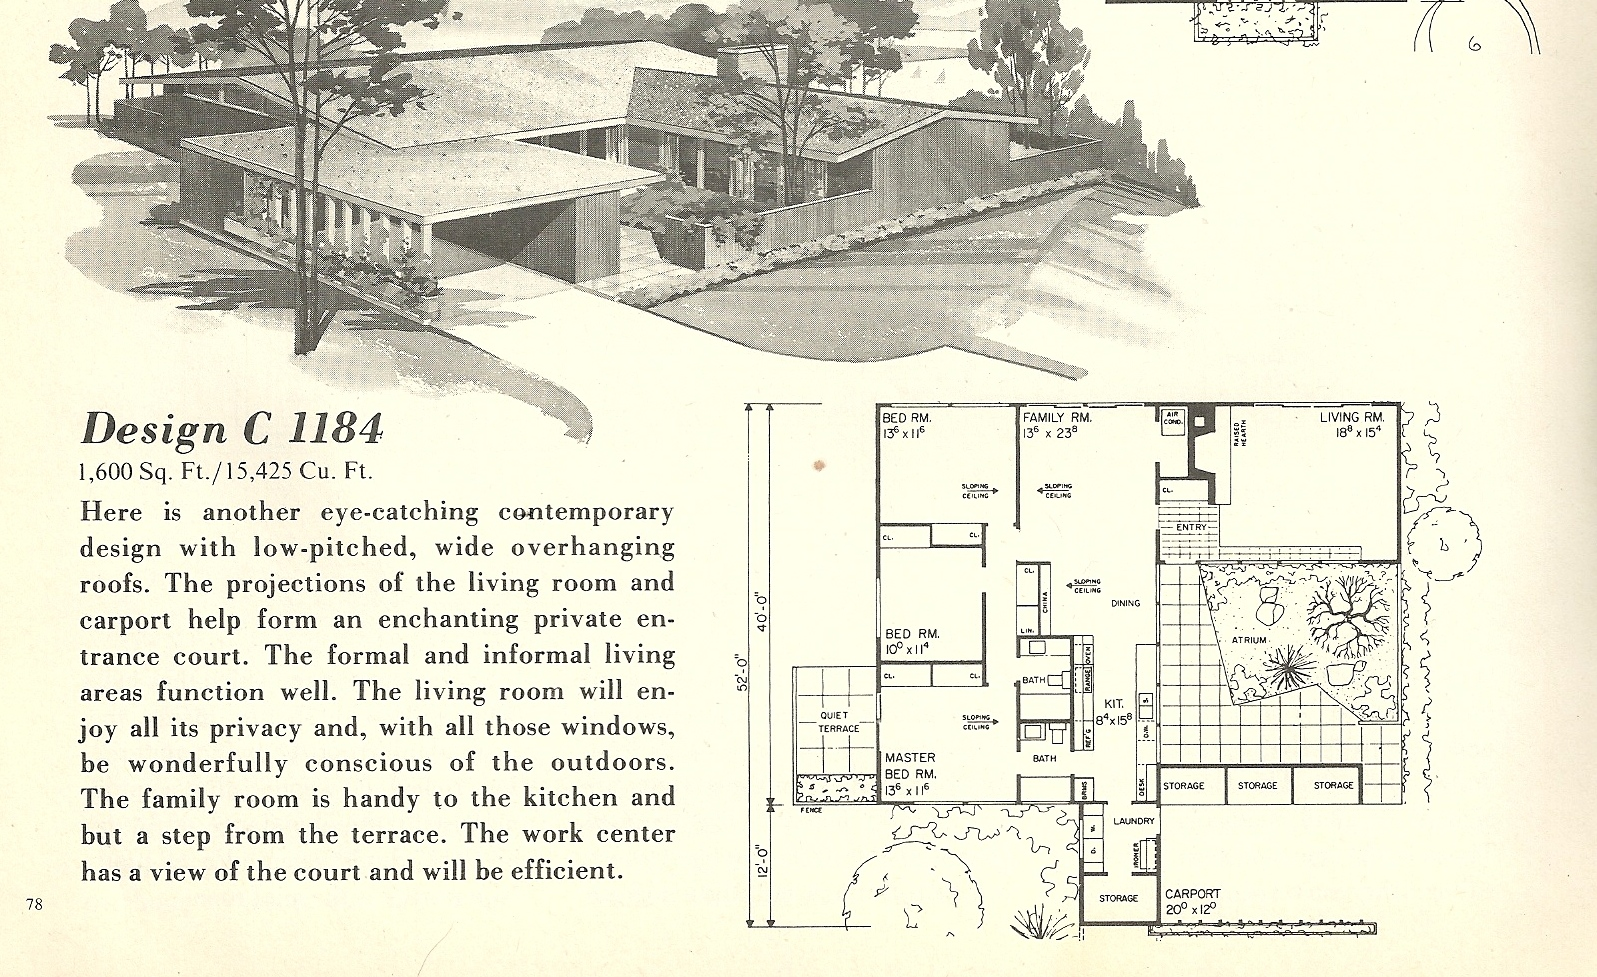 Vintage House Plans 1960s: Spanish Style and Mid Century Modern ...